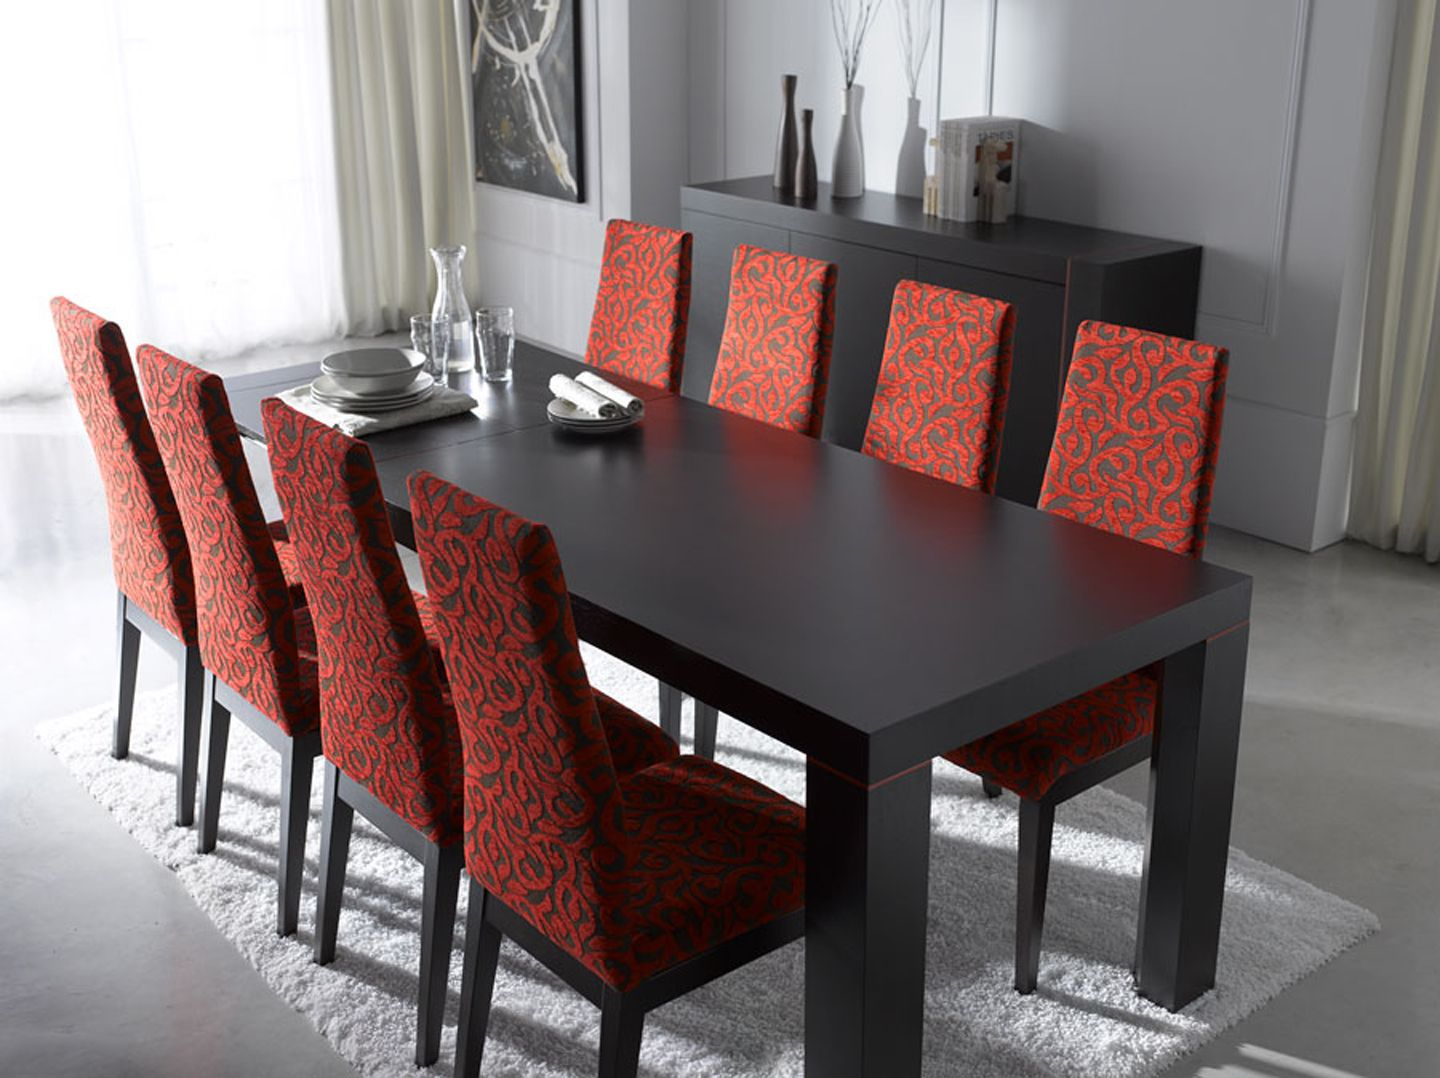 18 Innovative Ideas For Modern Dining Rooms : Charming Modern Dining Room  Design with Black Inessa Dining Table and Ada Red Floral Pattern D.